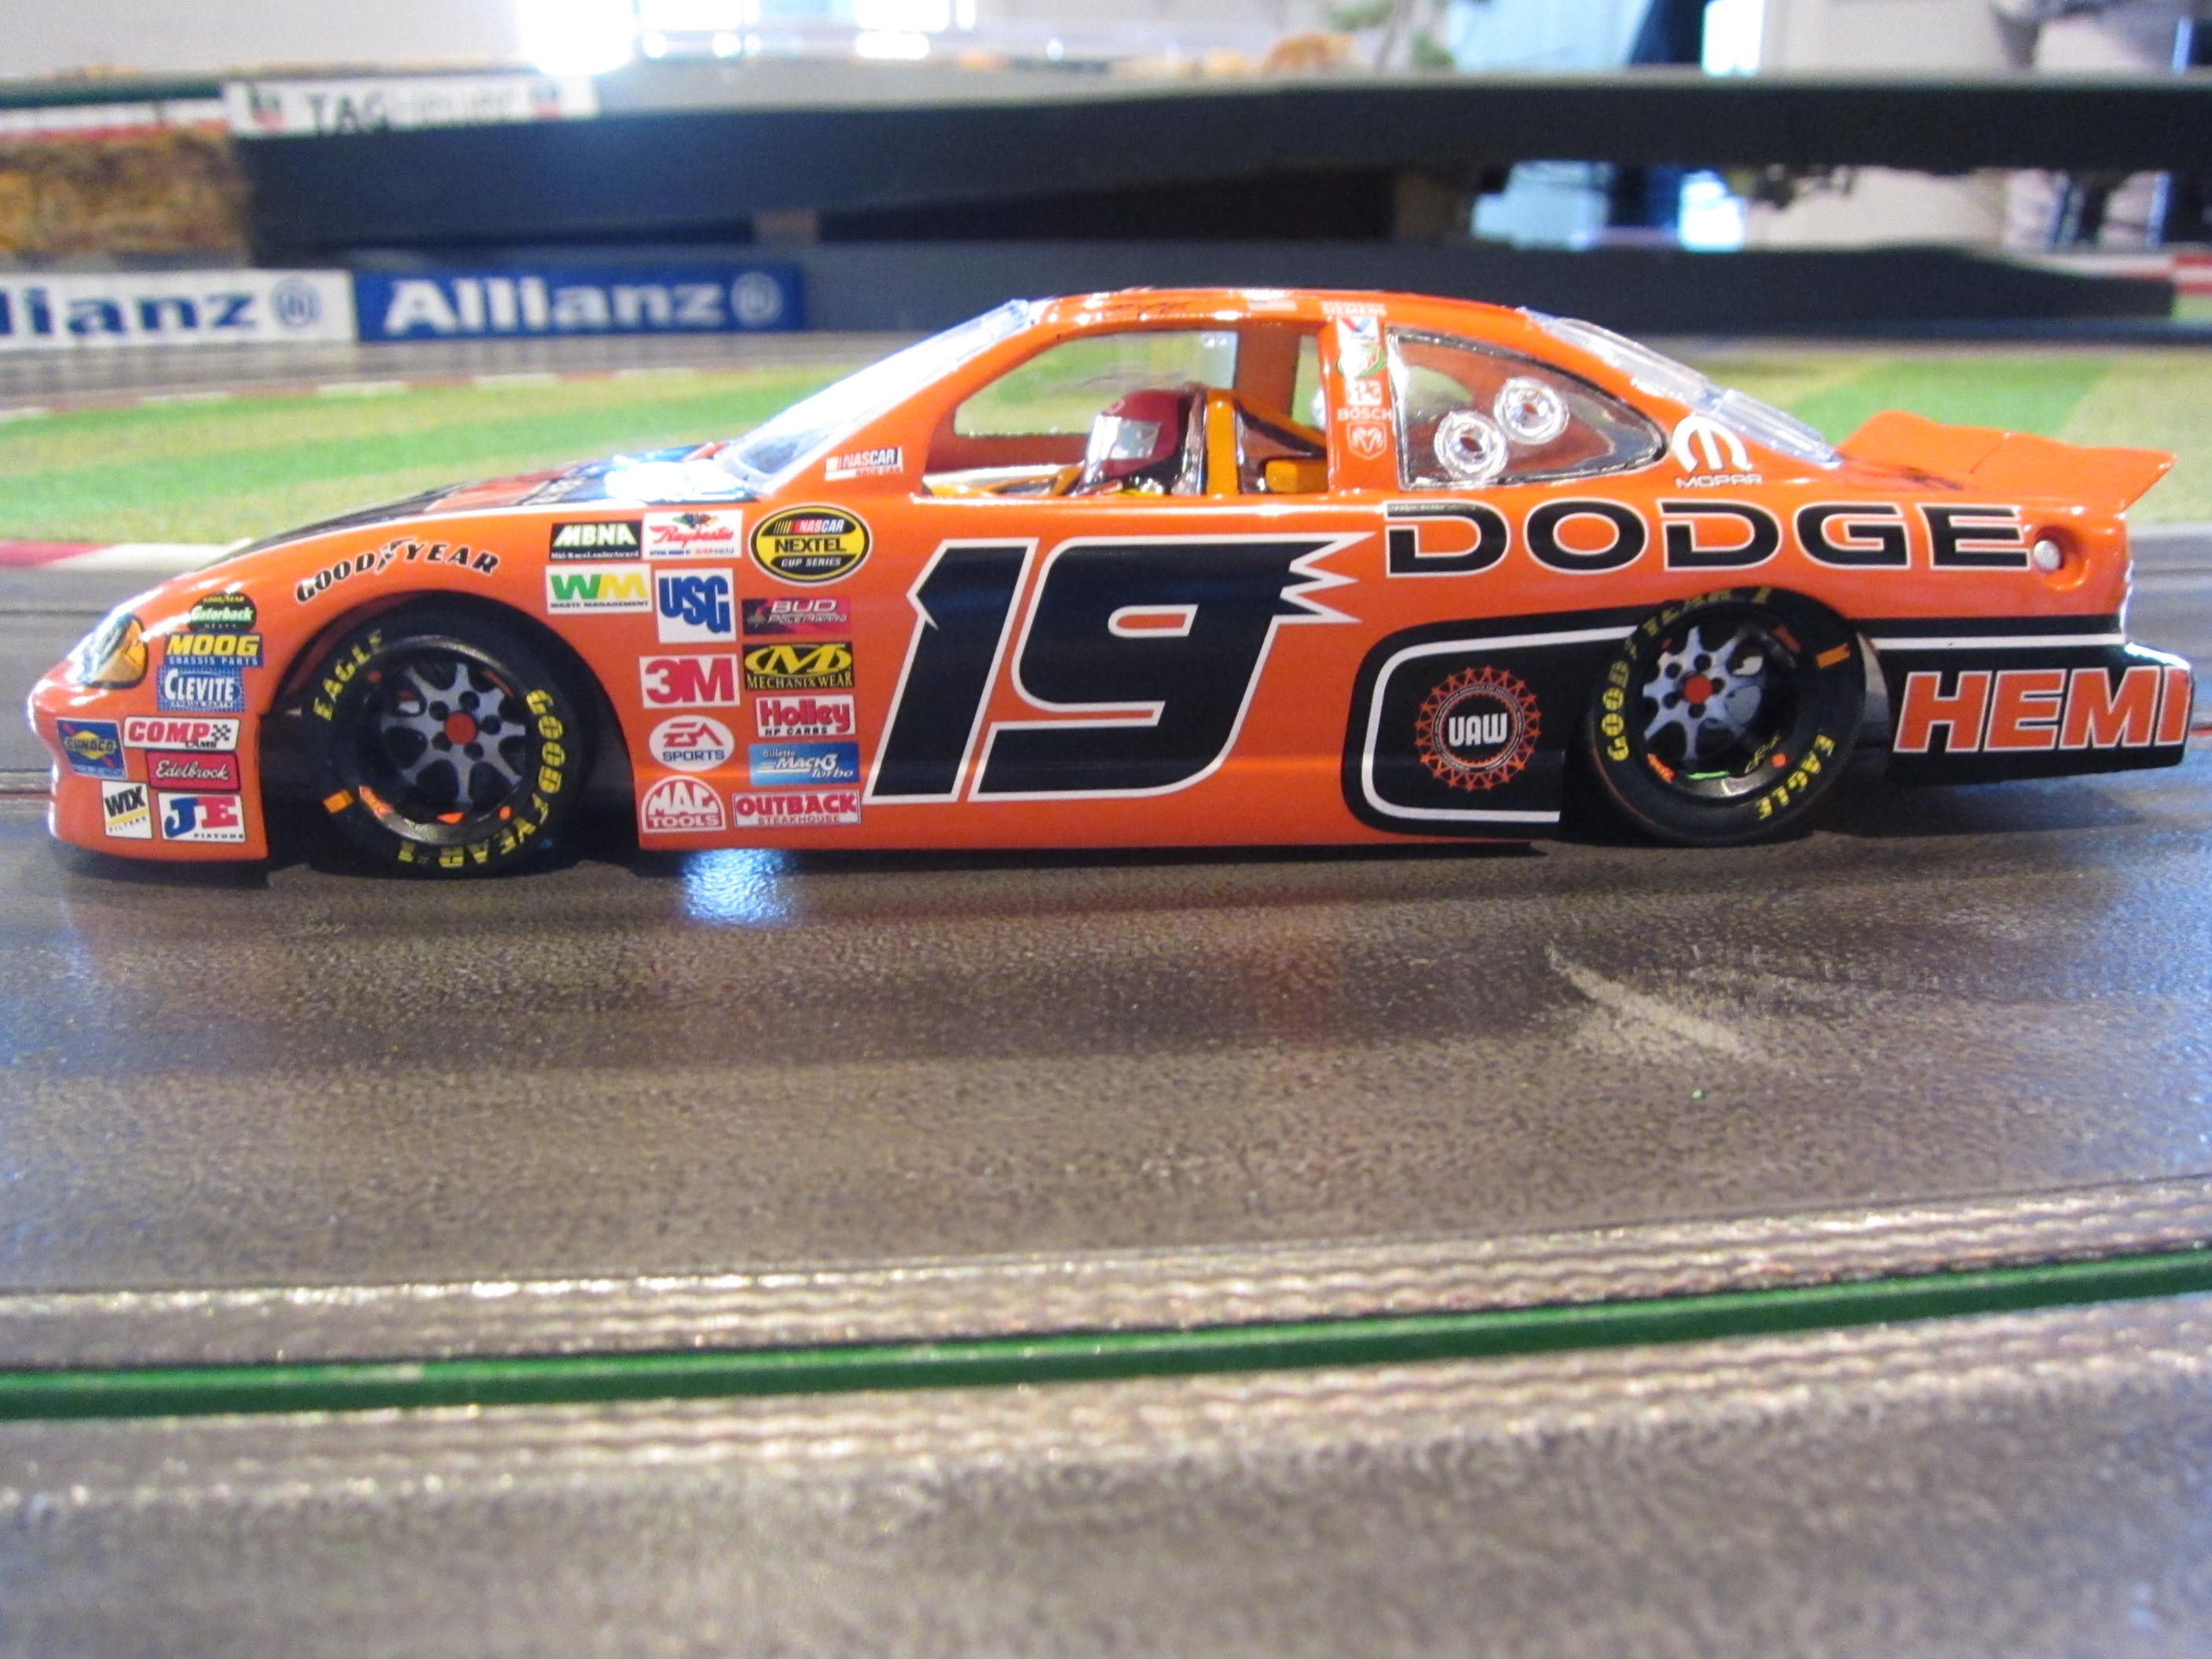 1/24 Scale Hard Bodies Nascar